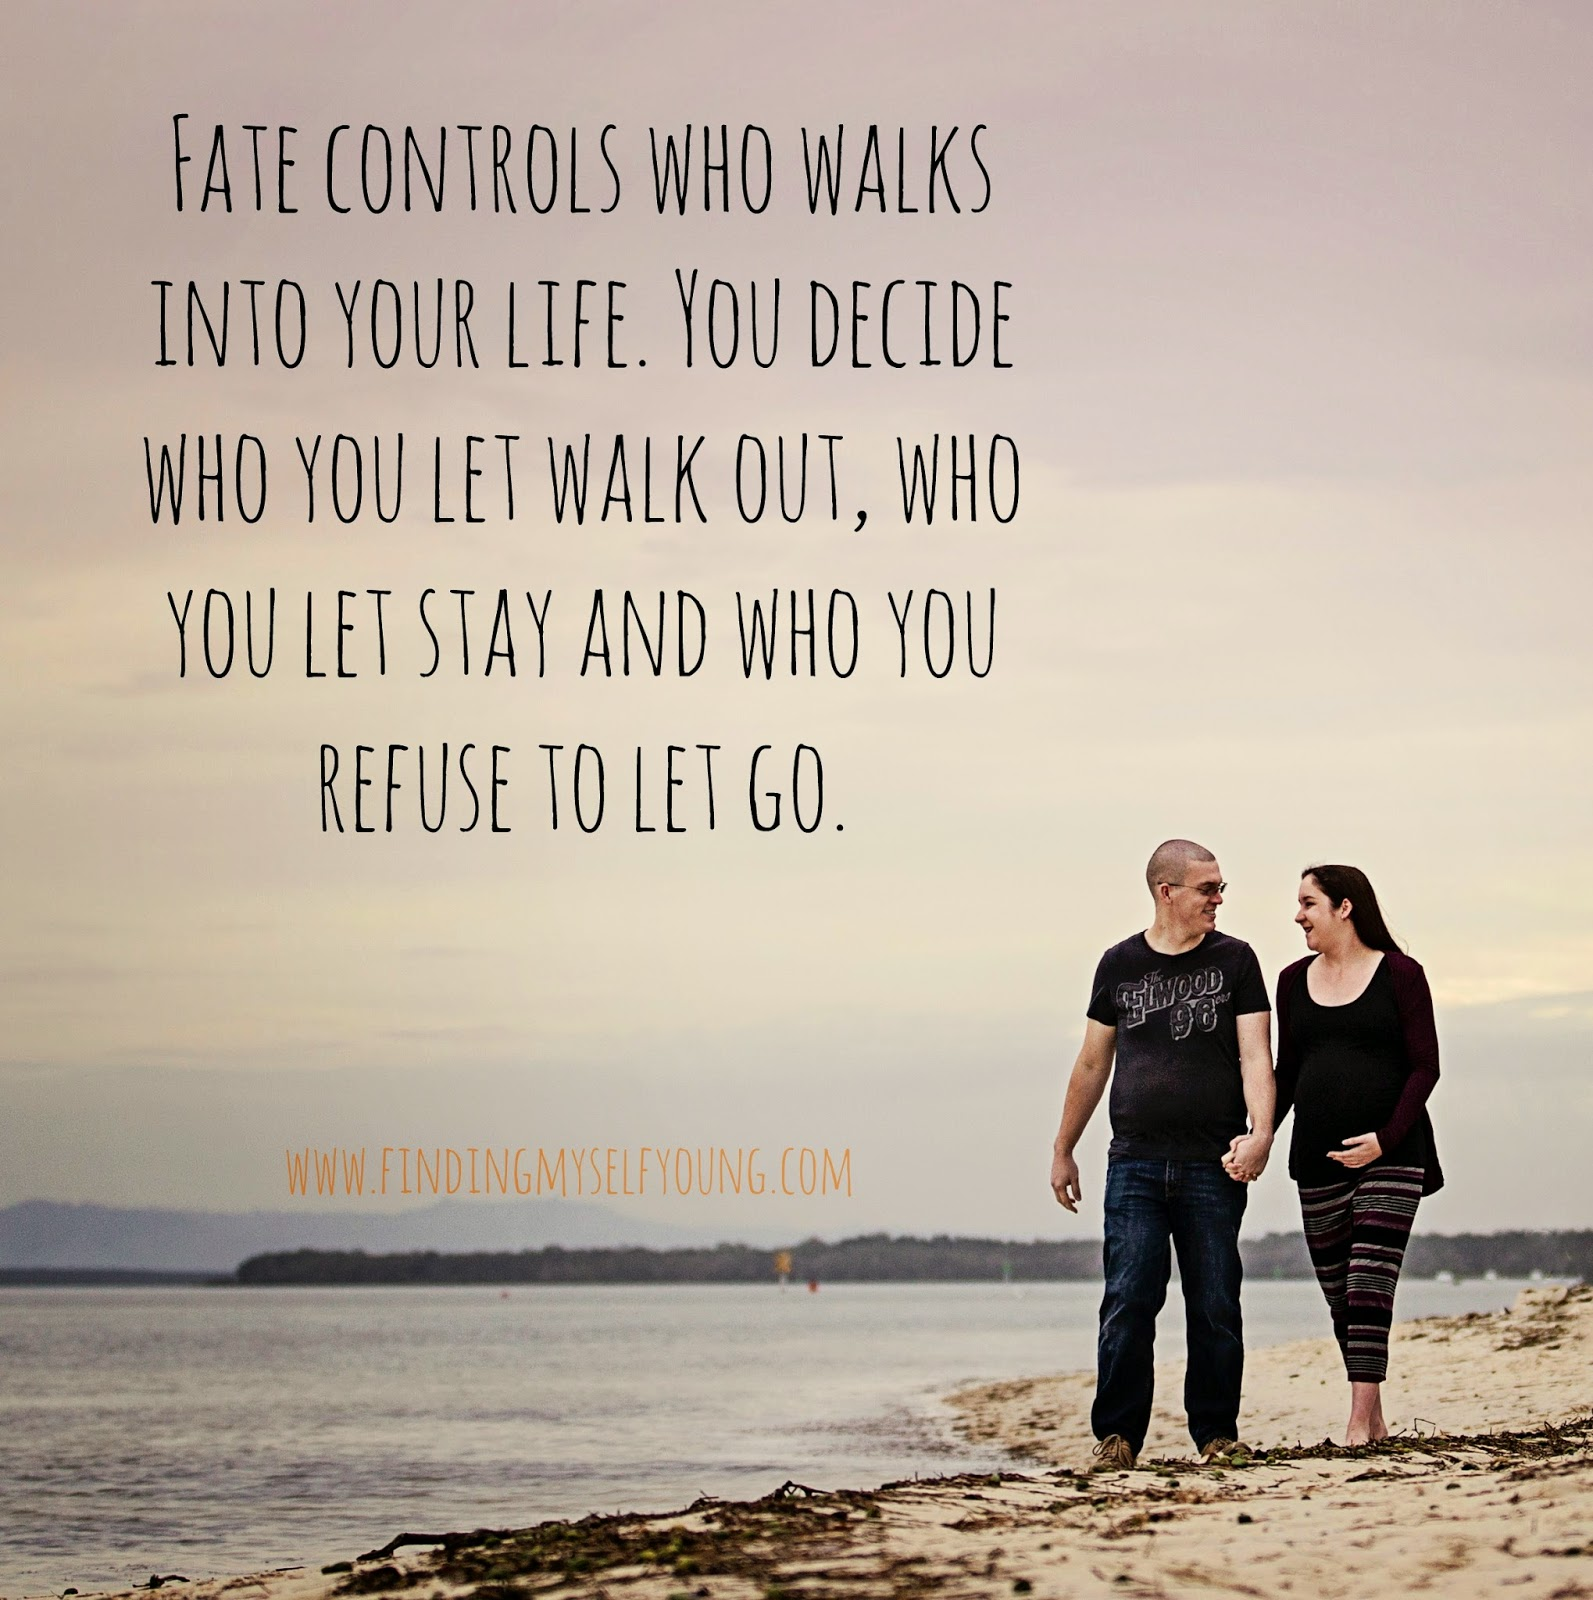 Fate controls who walks into your life. You decide who to let walk out, who you want to stay and who you refuse to let go.